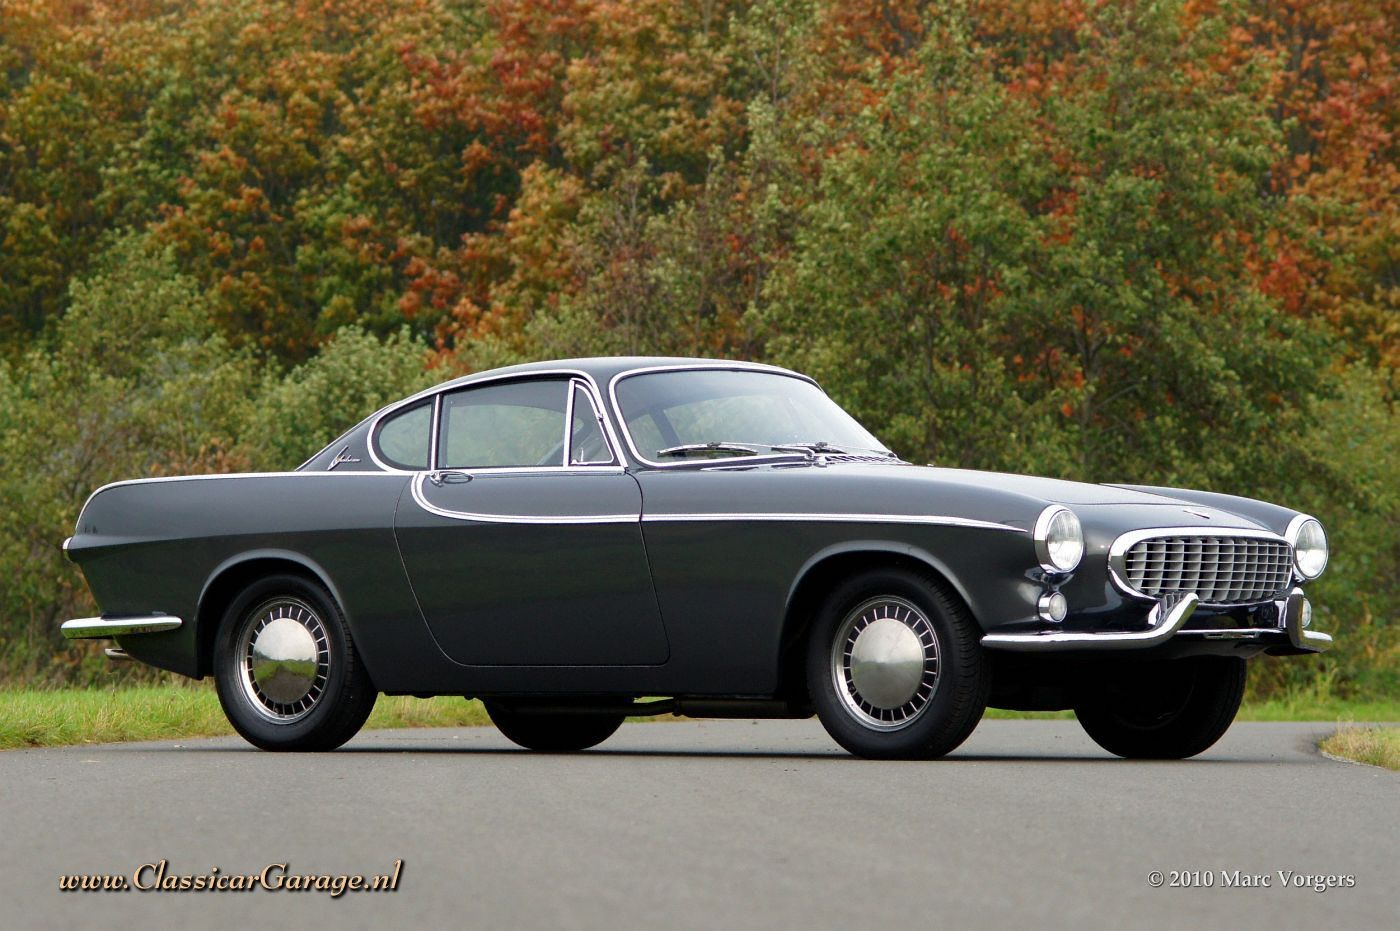 hint checkout the volvo p1800 image titles for clues as to what the